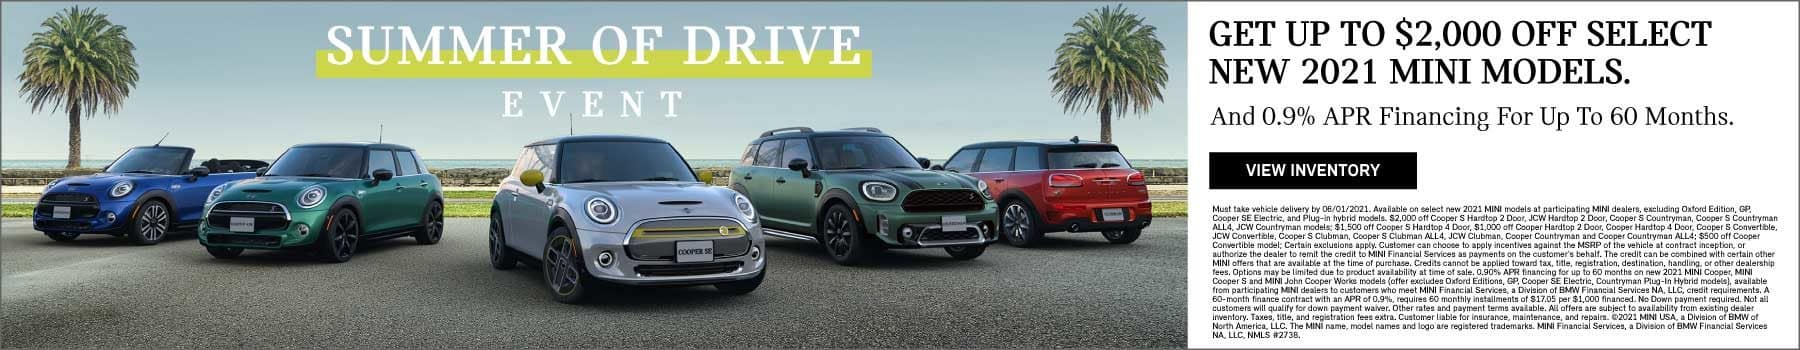 Get up to $2,000 off select new 2021 MINI models. And 0.9% APR financing for up to 60 months. Offer ends 06/01/21. Click to view inventory. See dealer for full details. Image shows a family of 2021 MINI vehicles parked on pavement in front of the beach framed by two palm trees. MINI's